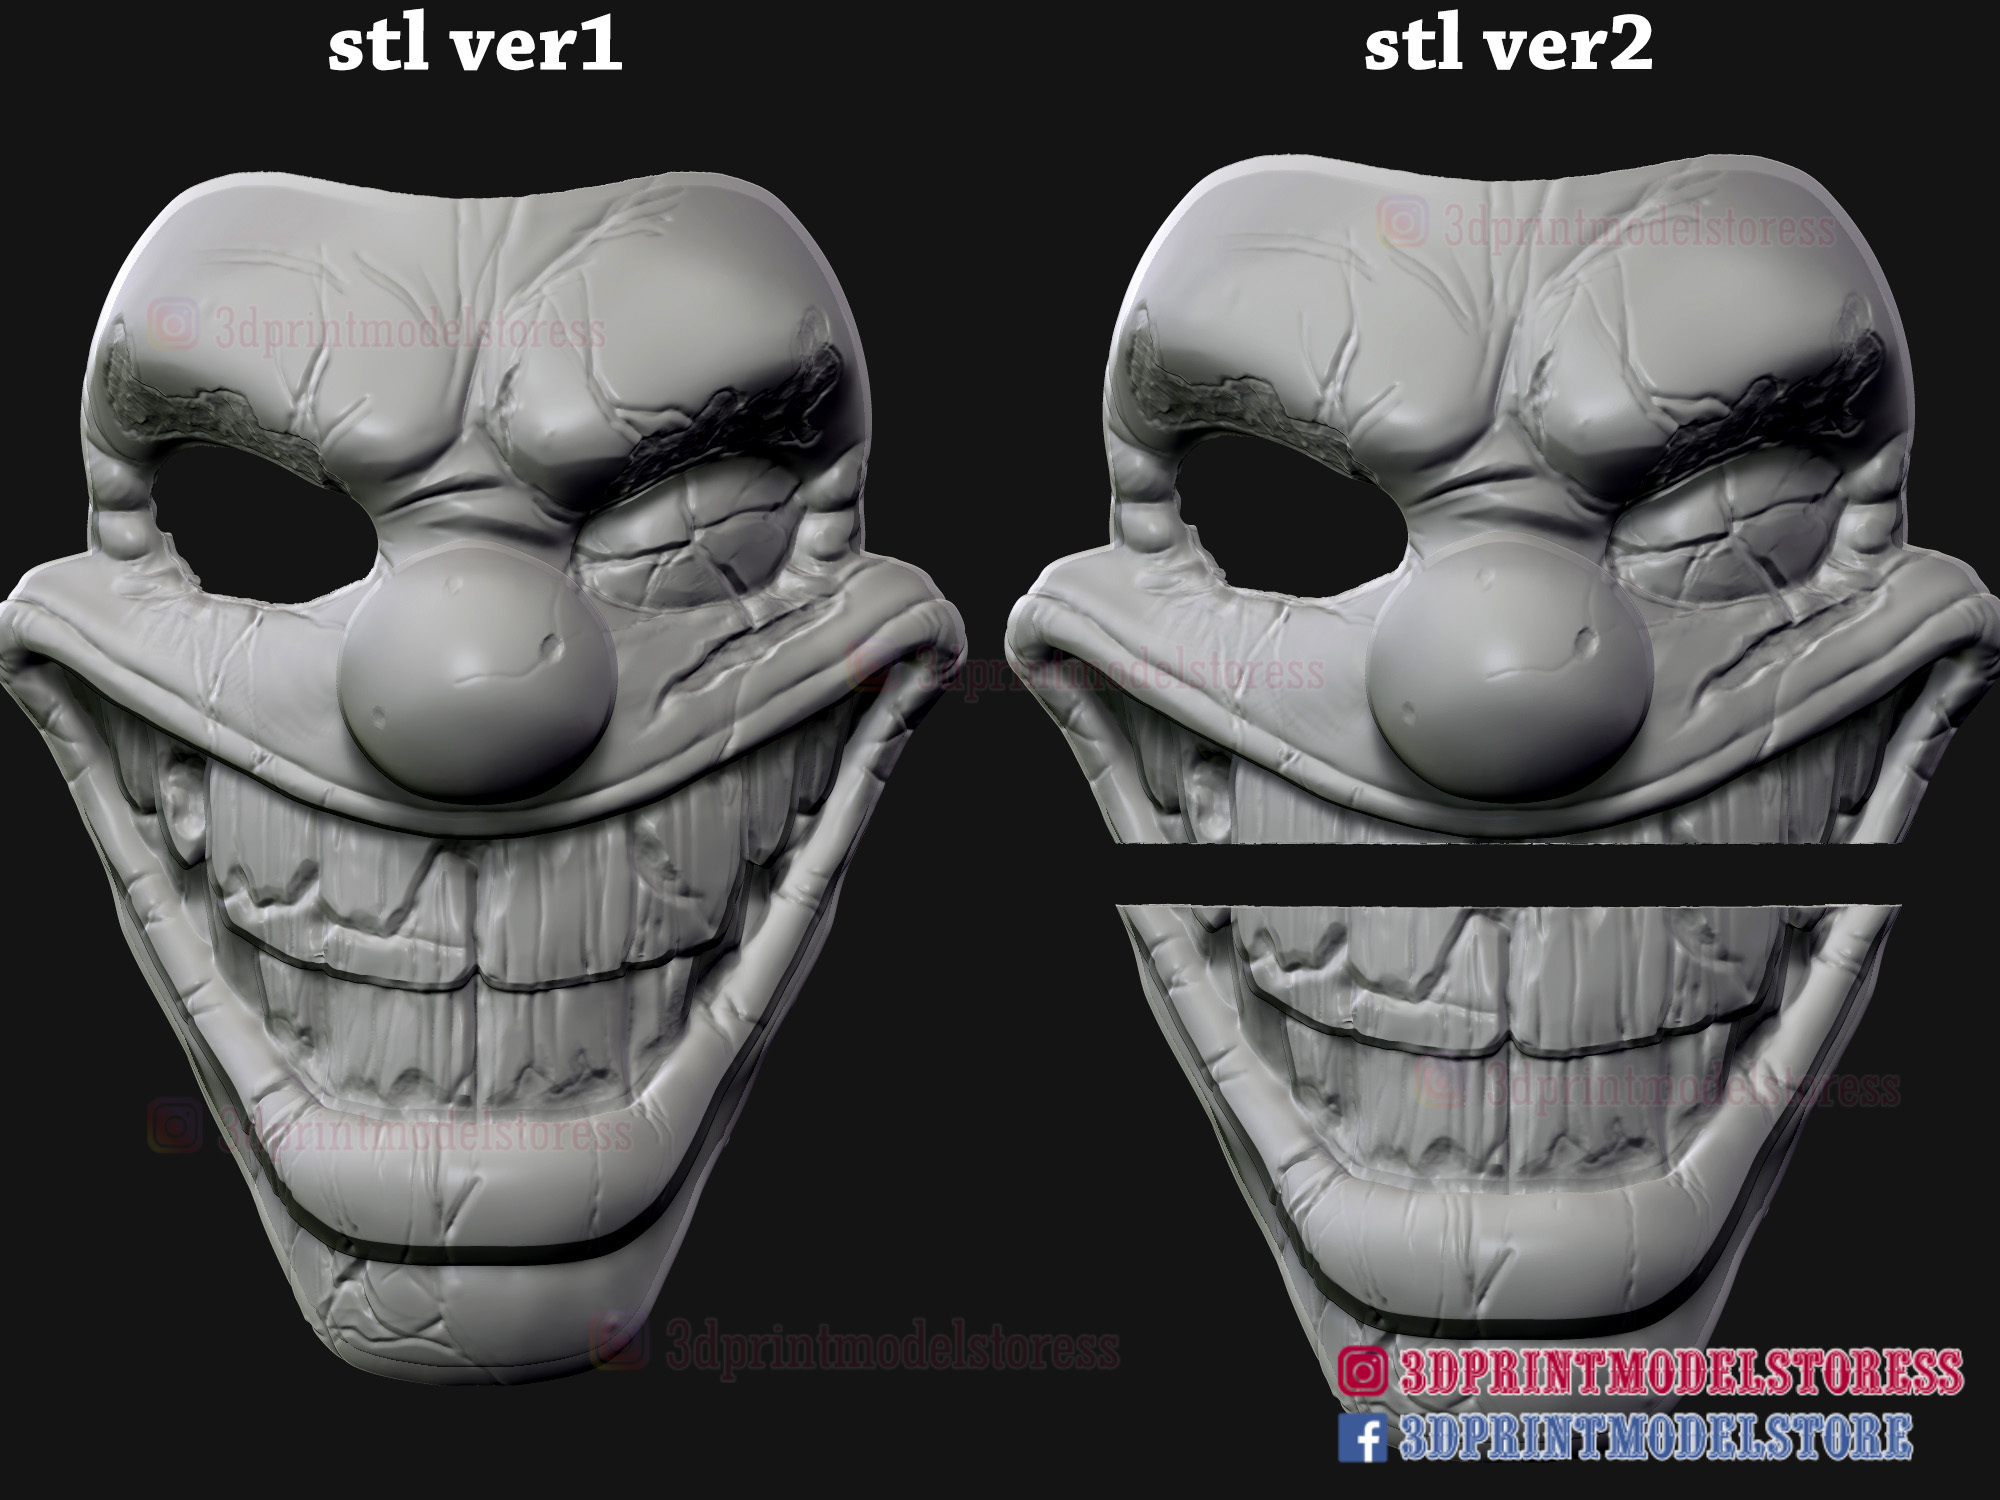 Twisted_metal_killer_clown-14.jpg Download STL file Twisted Metal Killer Clown Mask  • 3D printer model, 3DPrintModelStoreSS